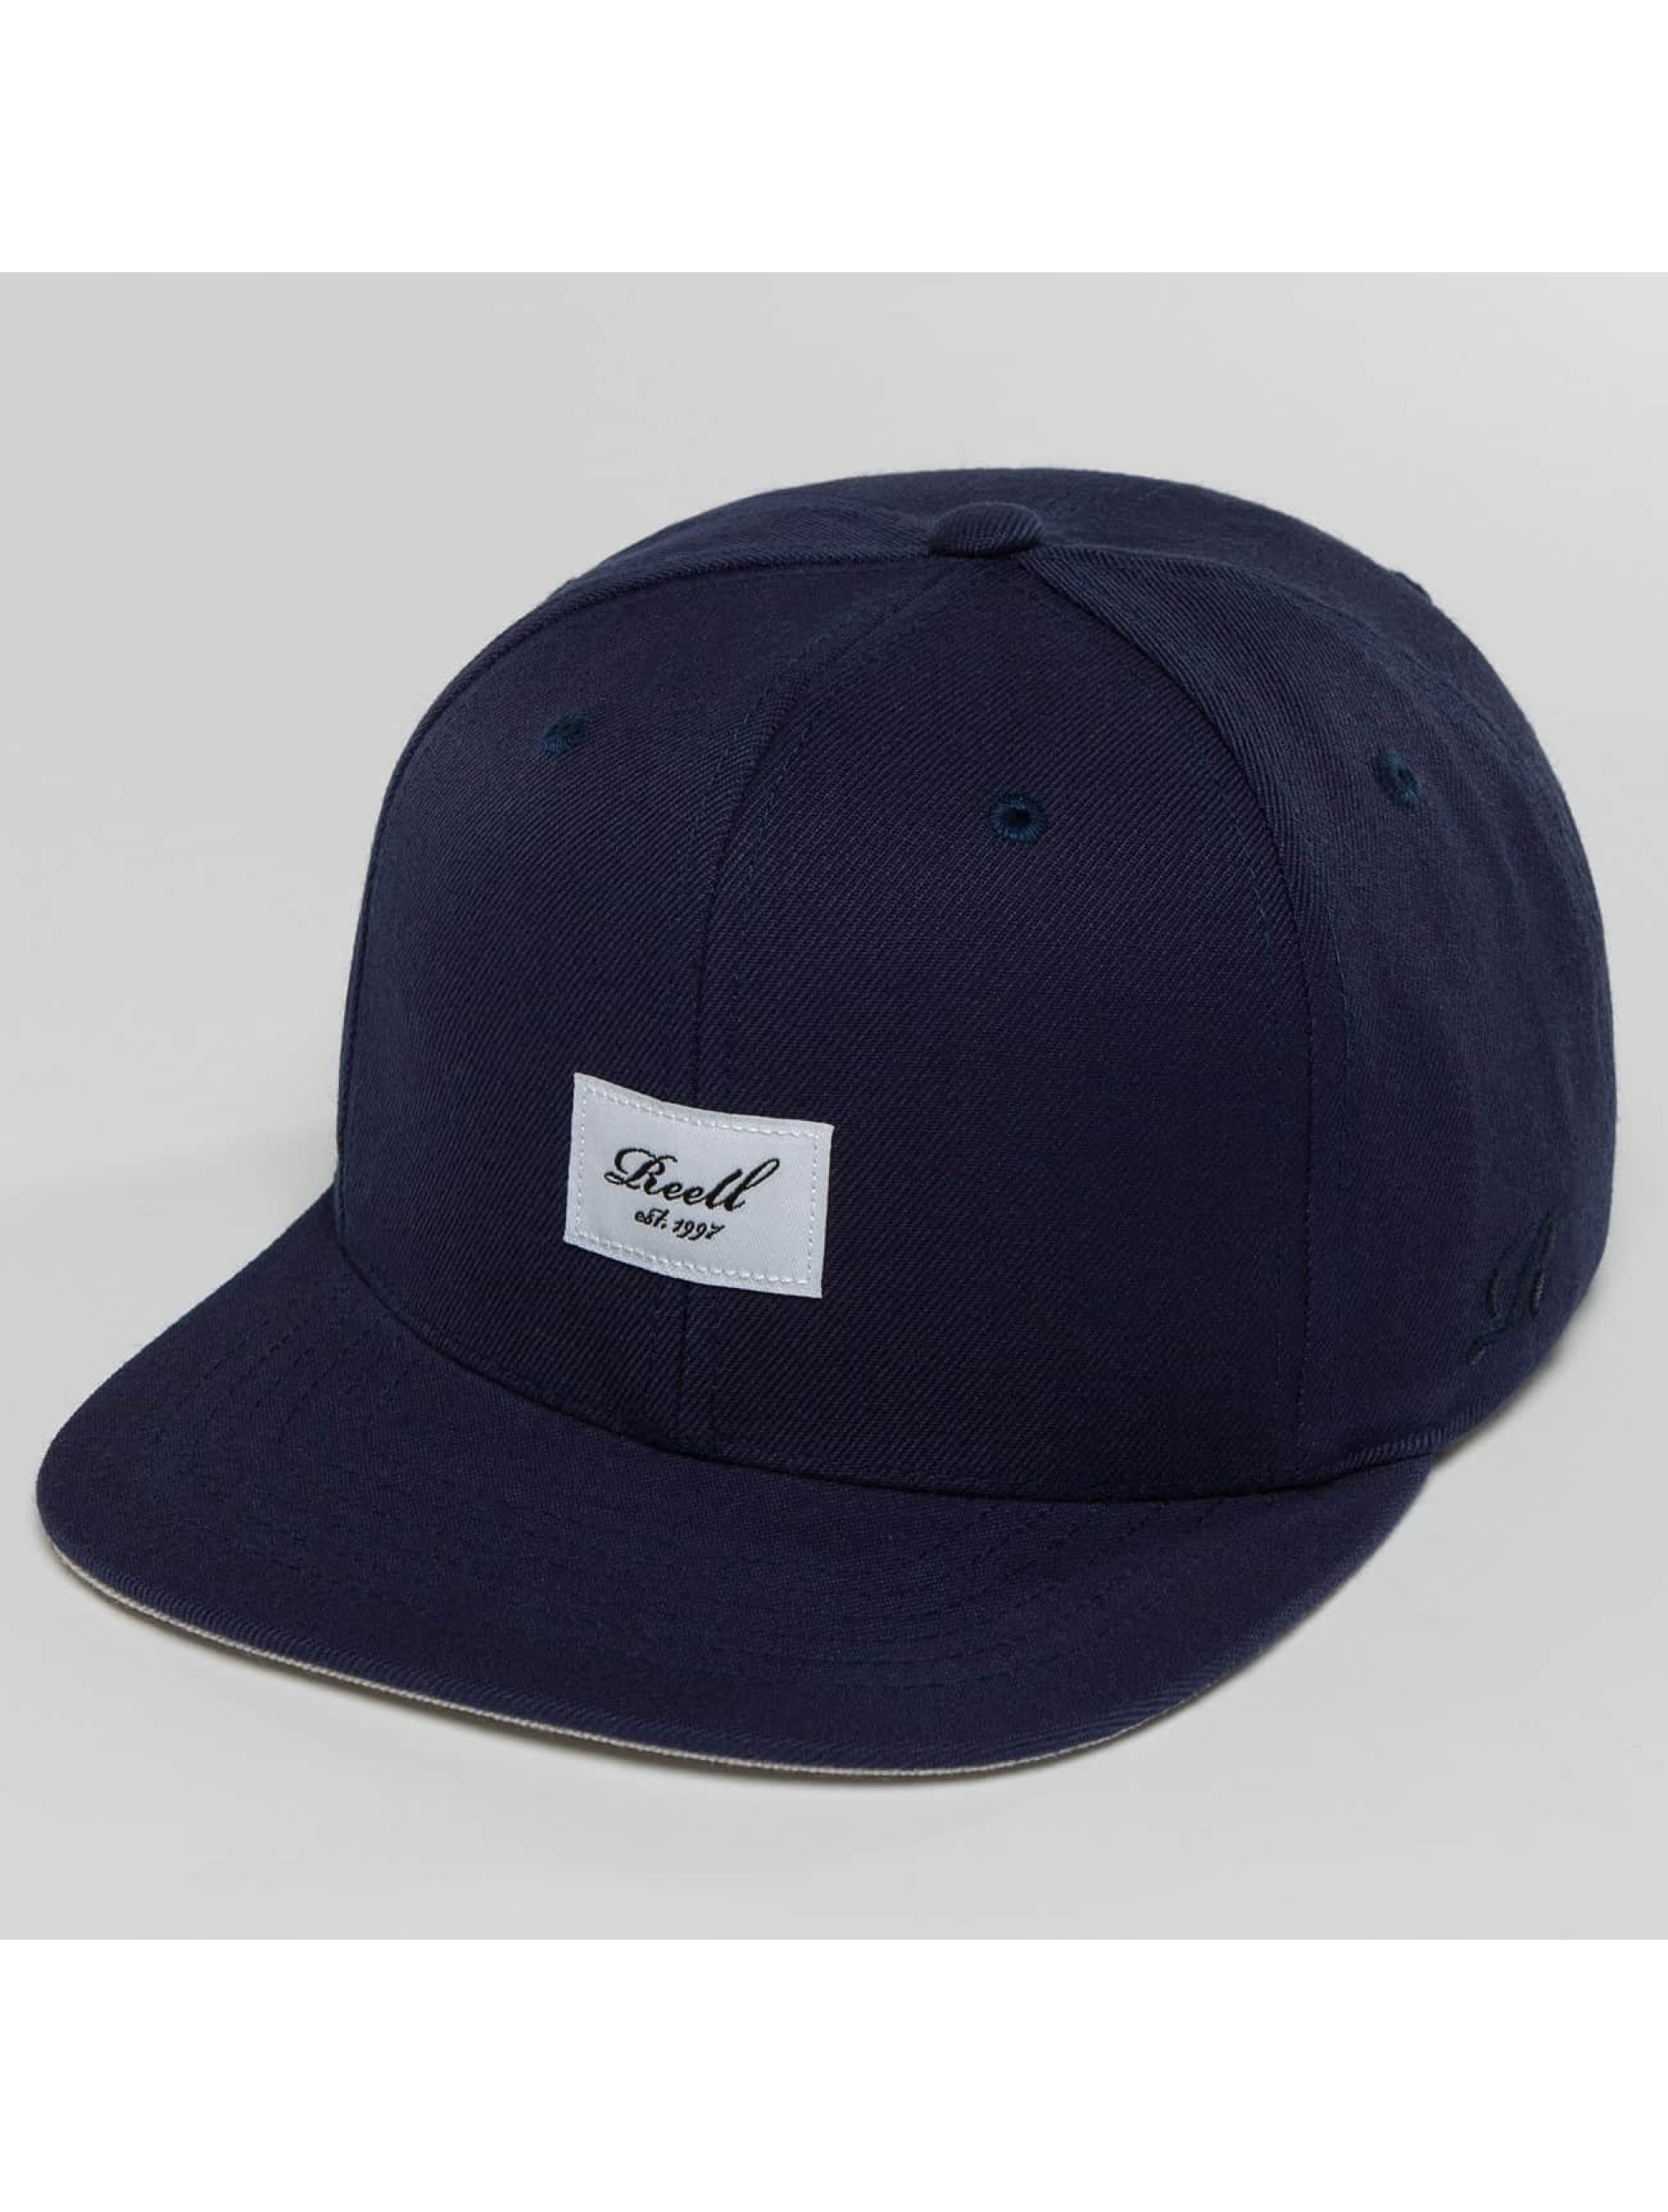 Reell Jeans Casquette Snapback & Strapback Base bleu